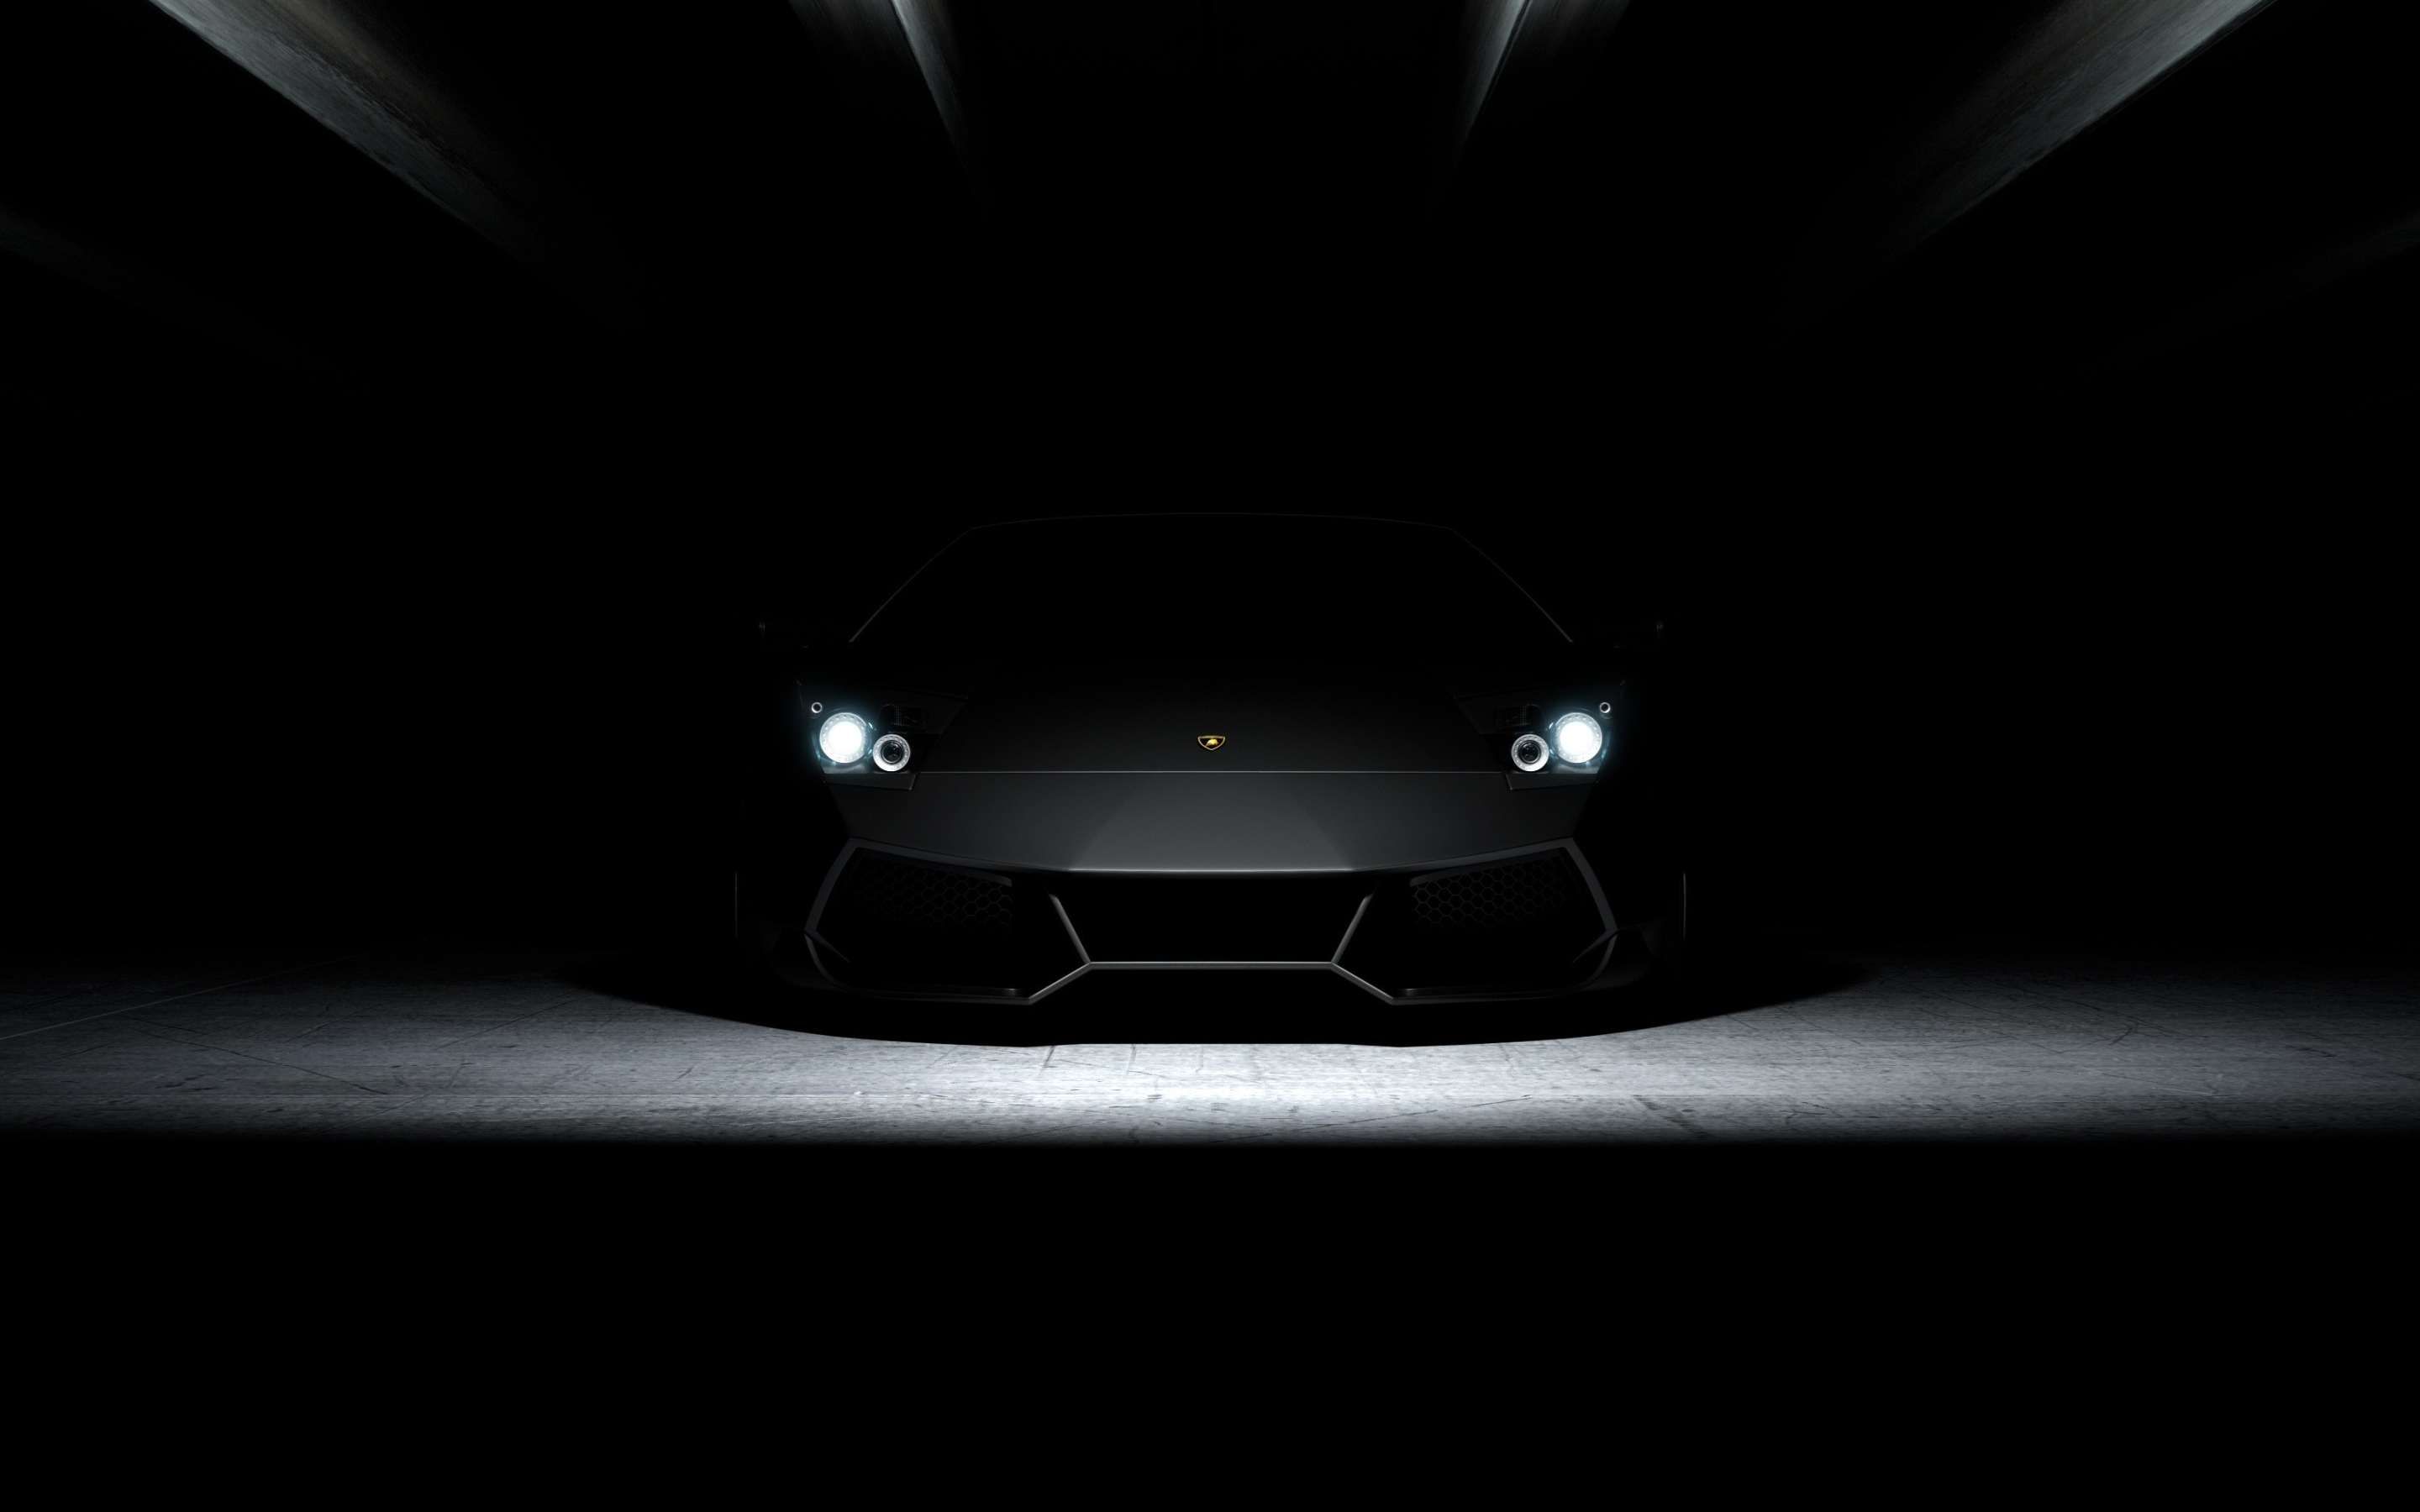 lamborghini hd wallpaper lamborghini, luxury car, hd, amazing